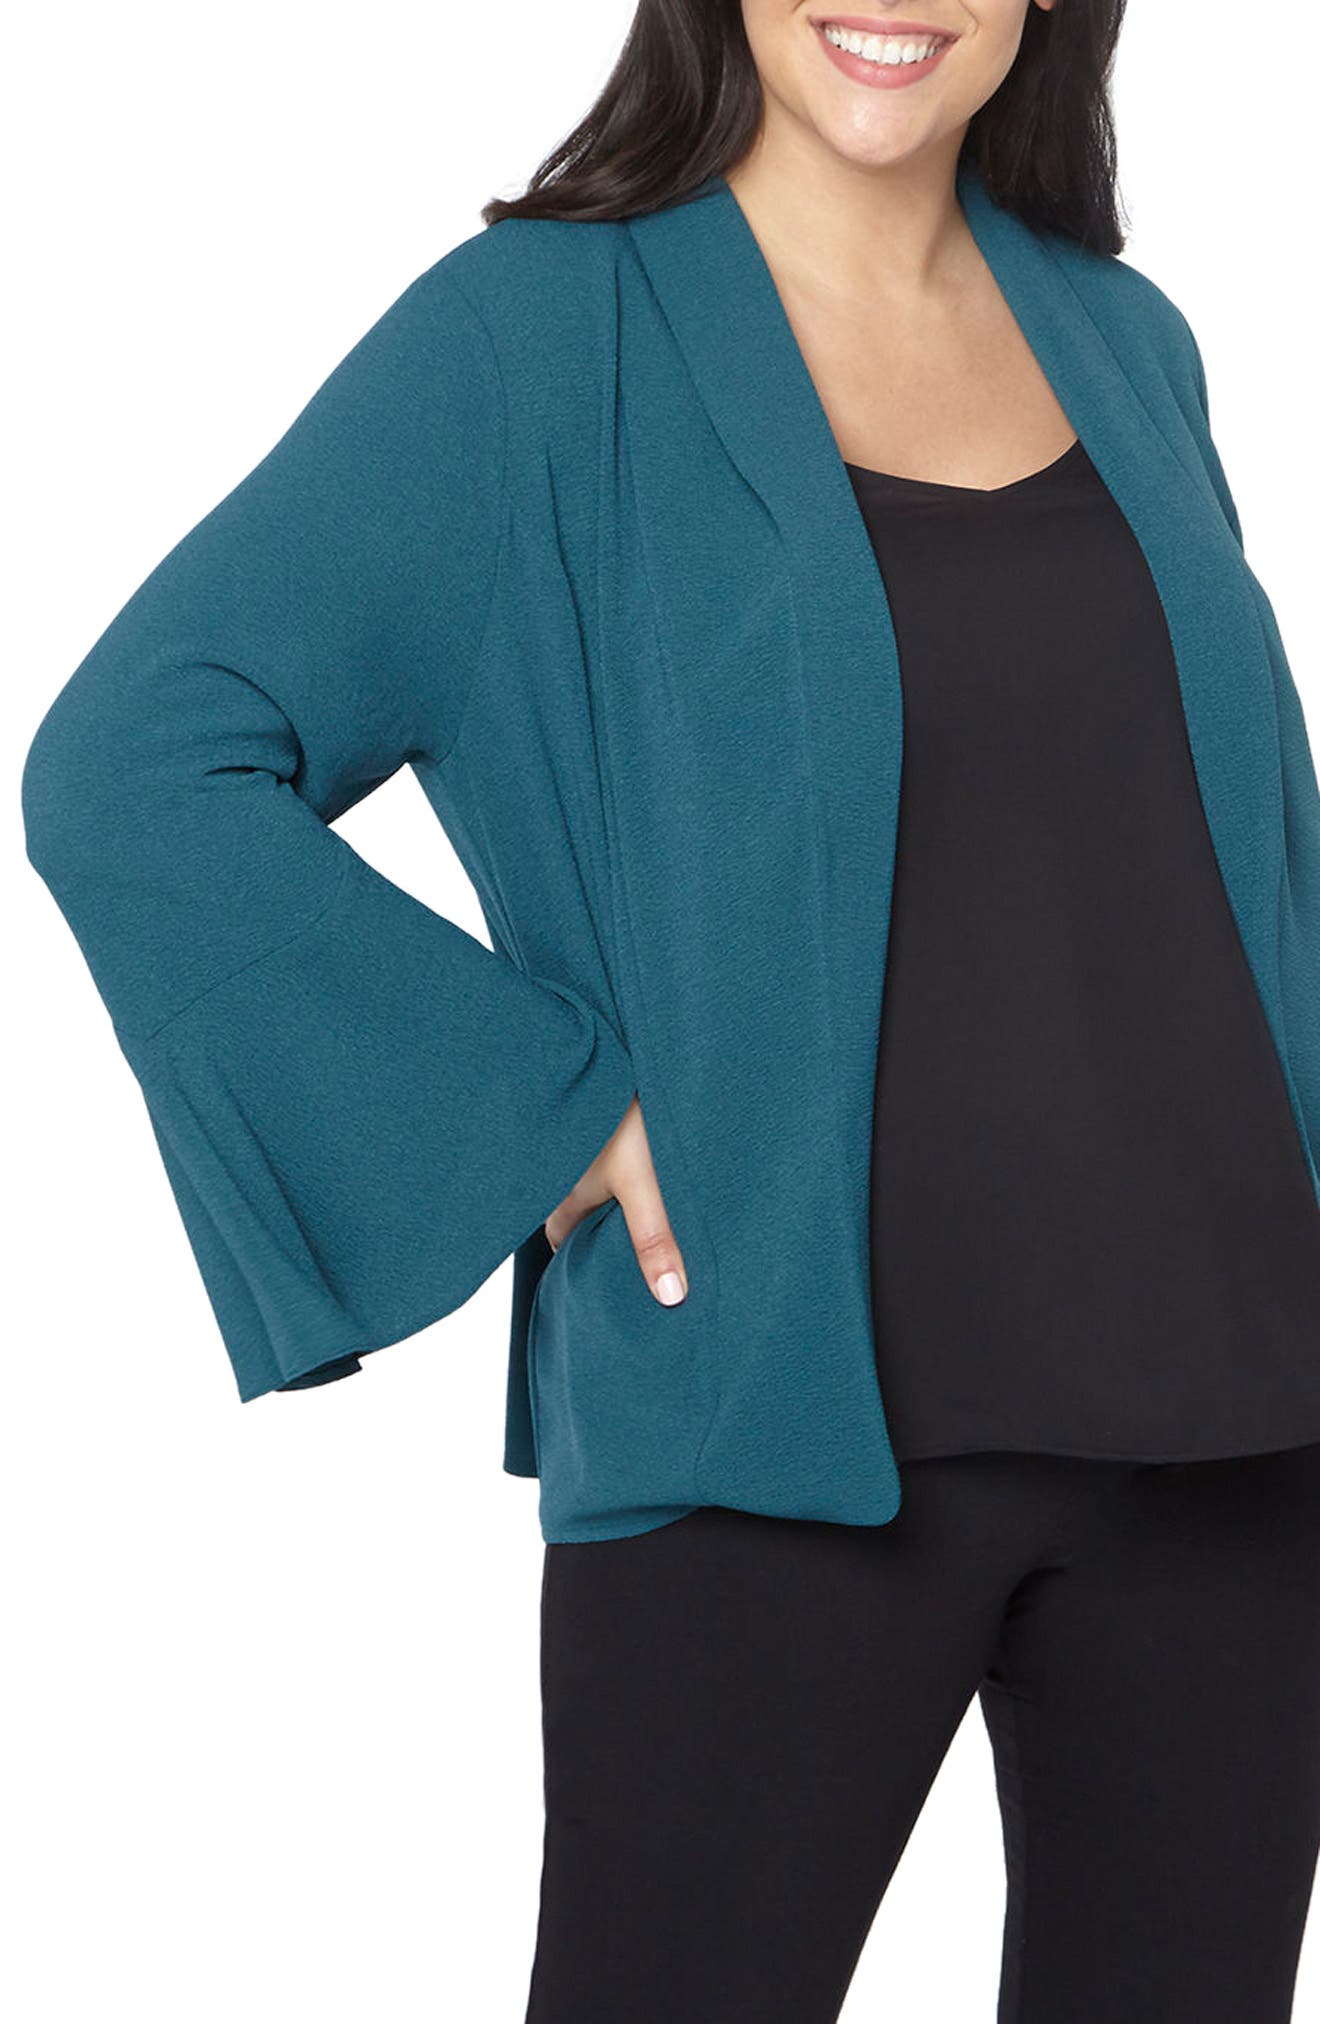 Bell Sleeve Crepe Jacket,                             Main thumbnail 1, color,                             Teal